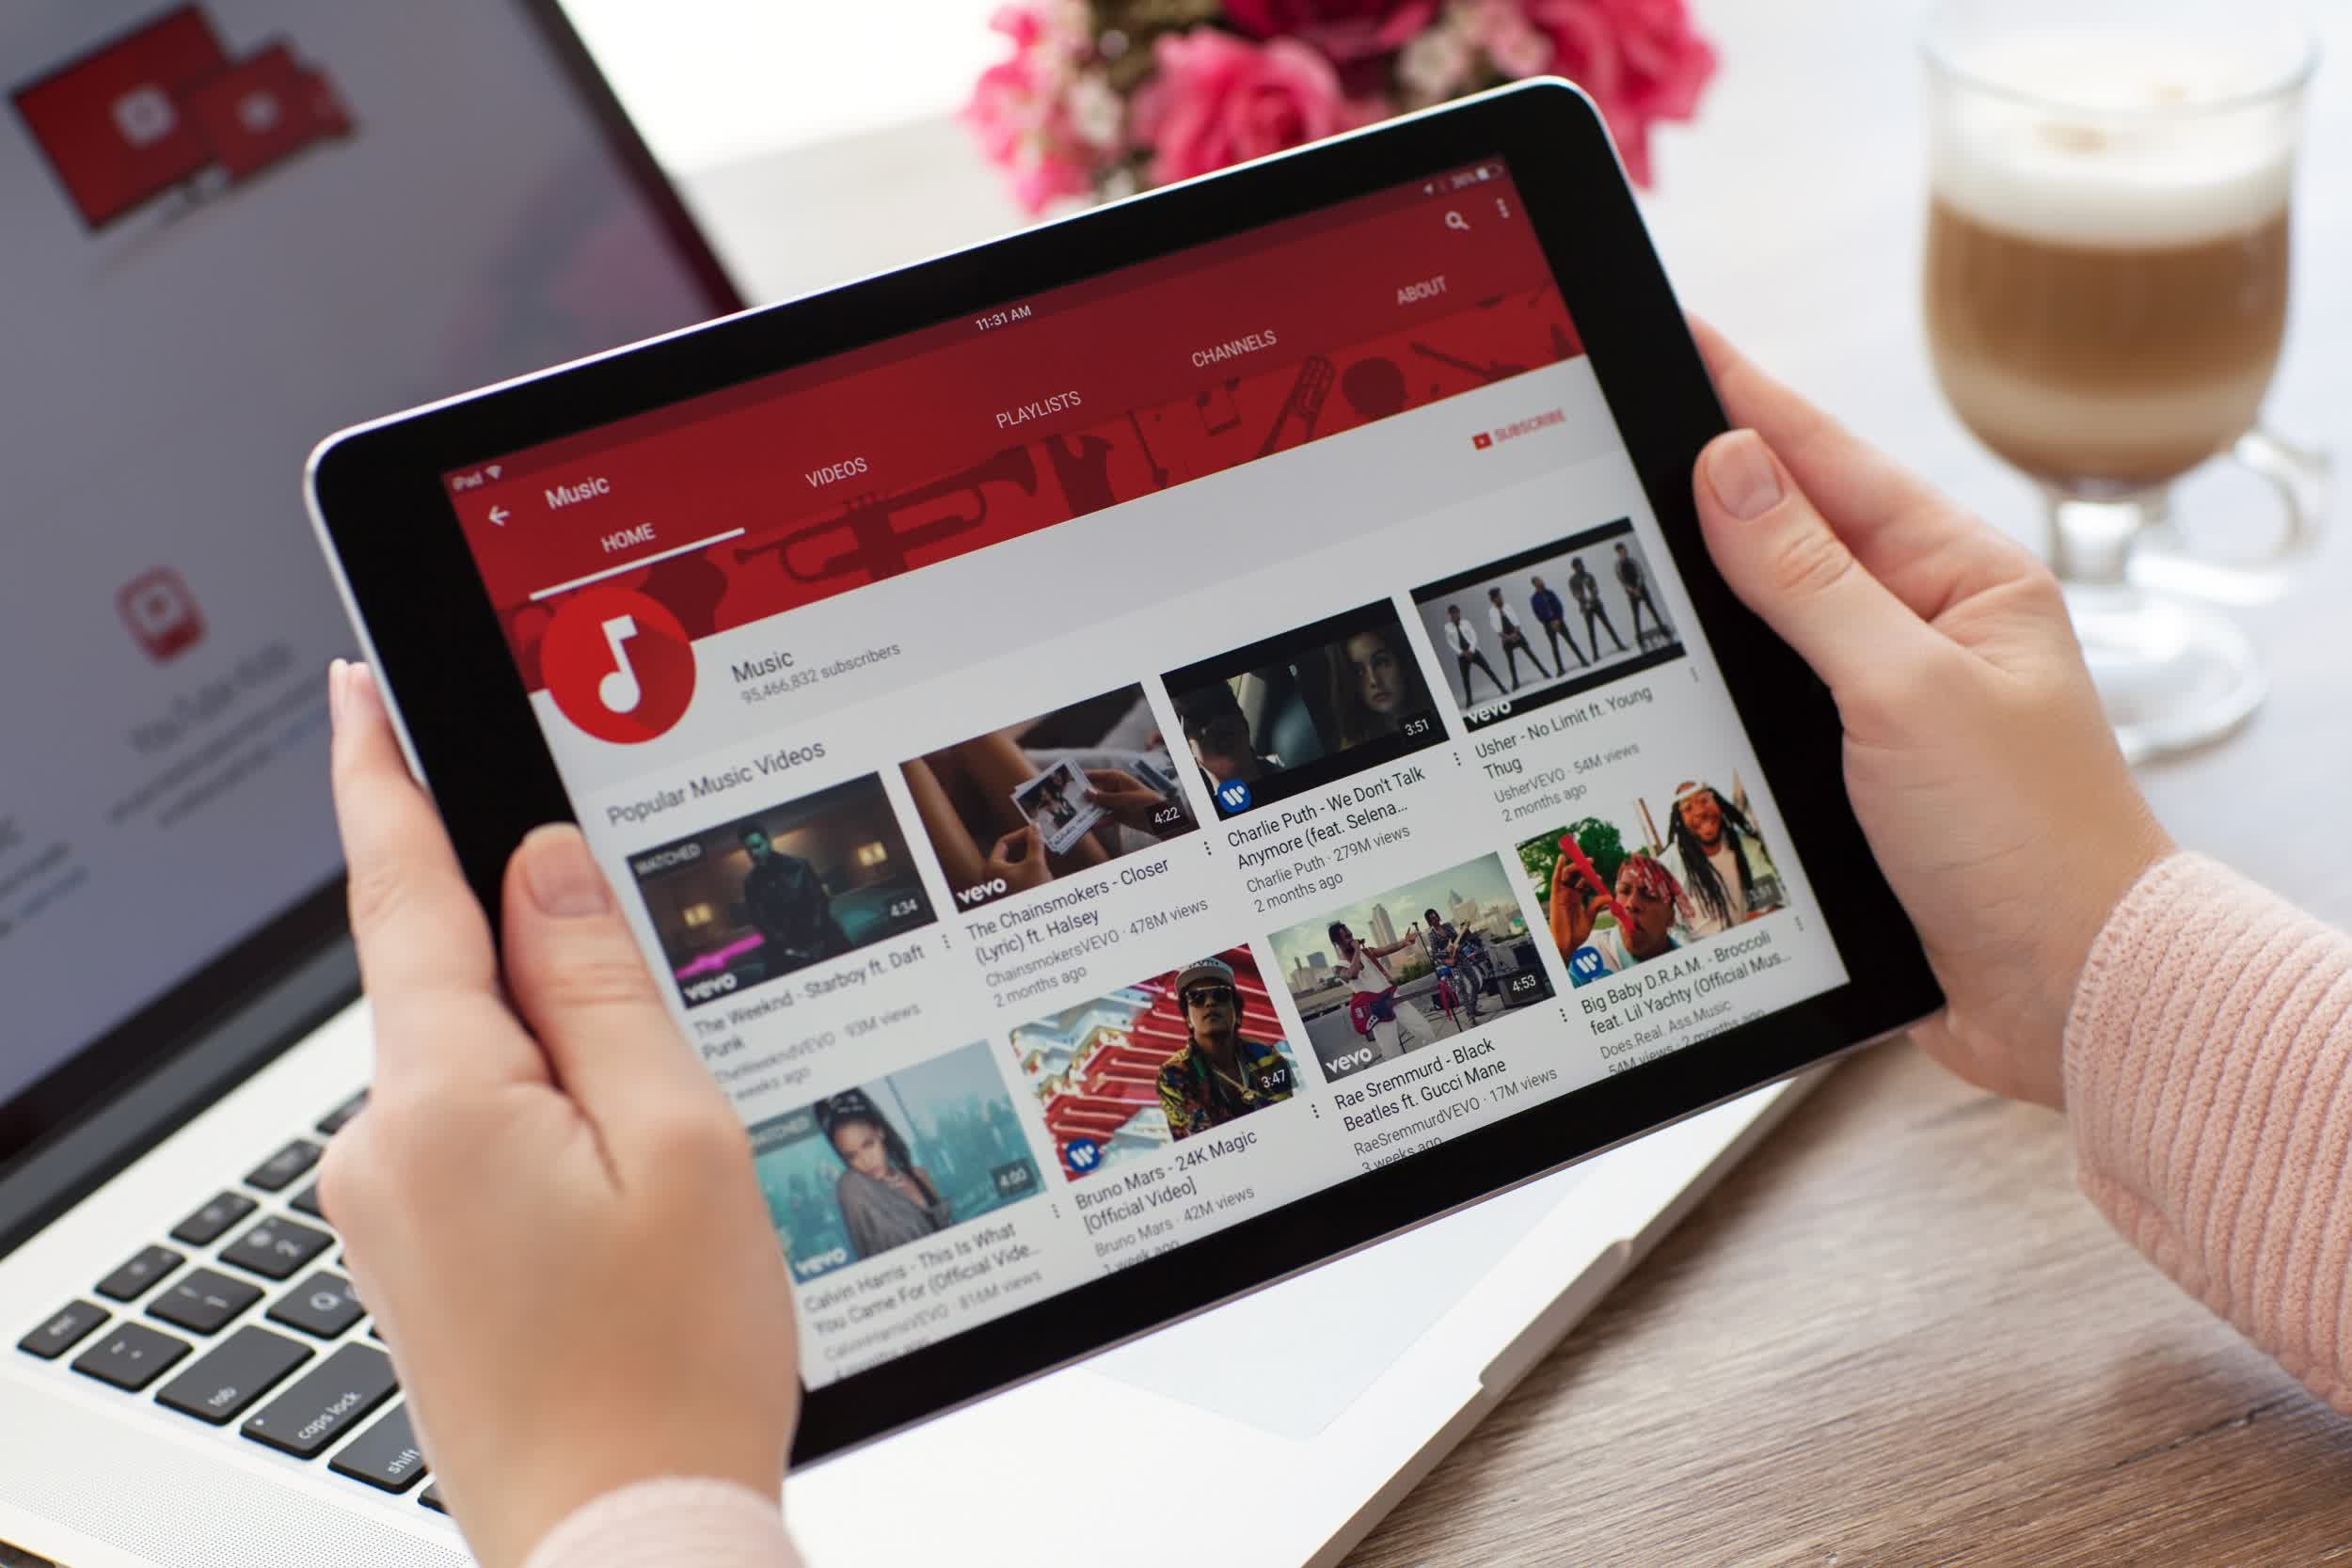 YouTube is experimenting with a tool that checks for copyright violations during video uploads